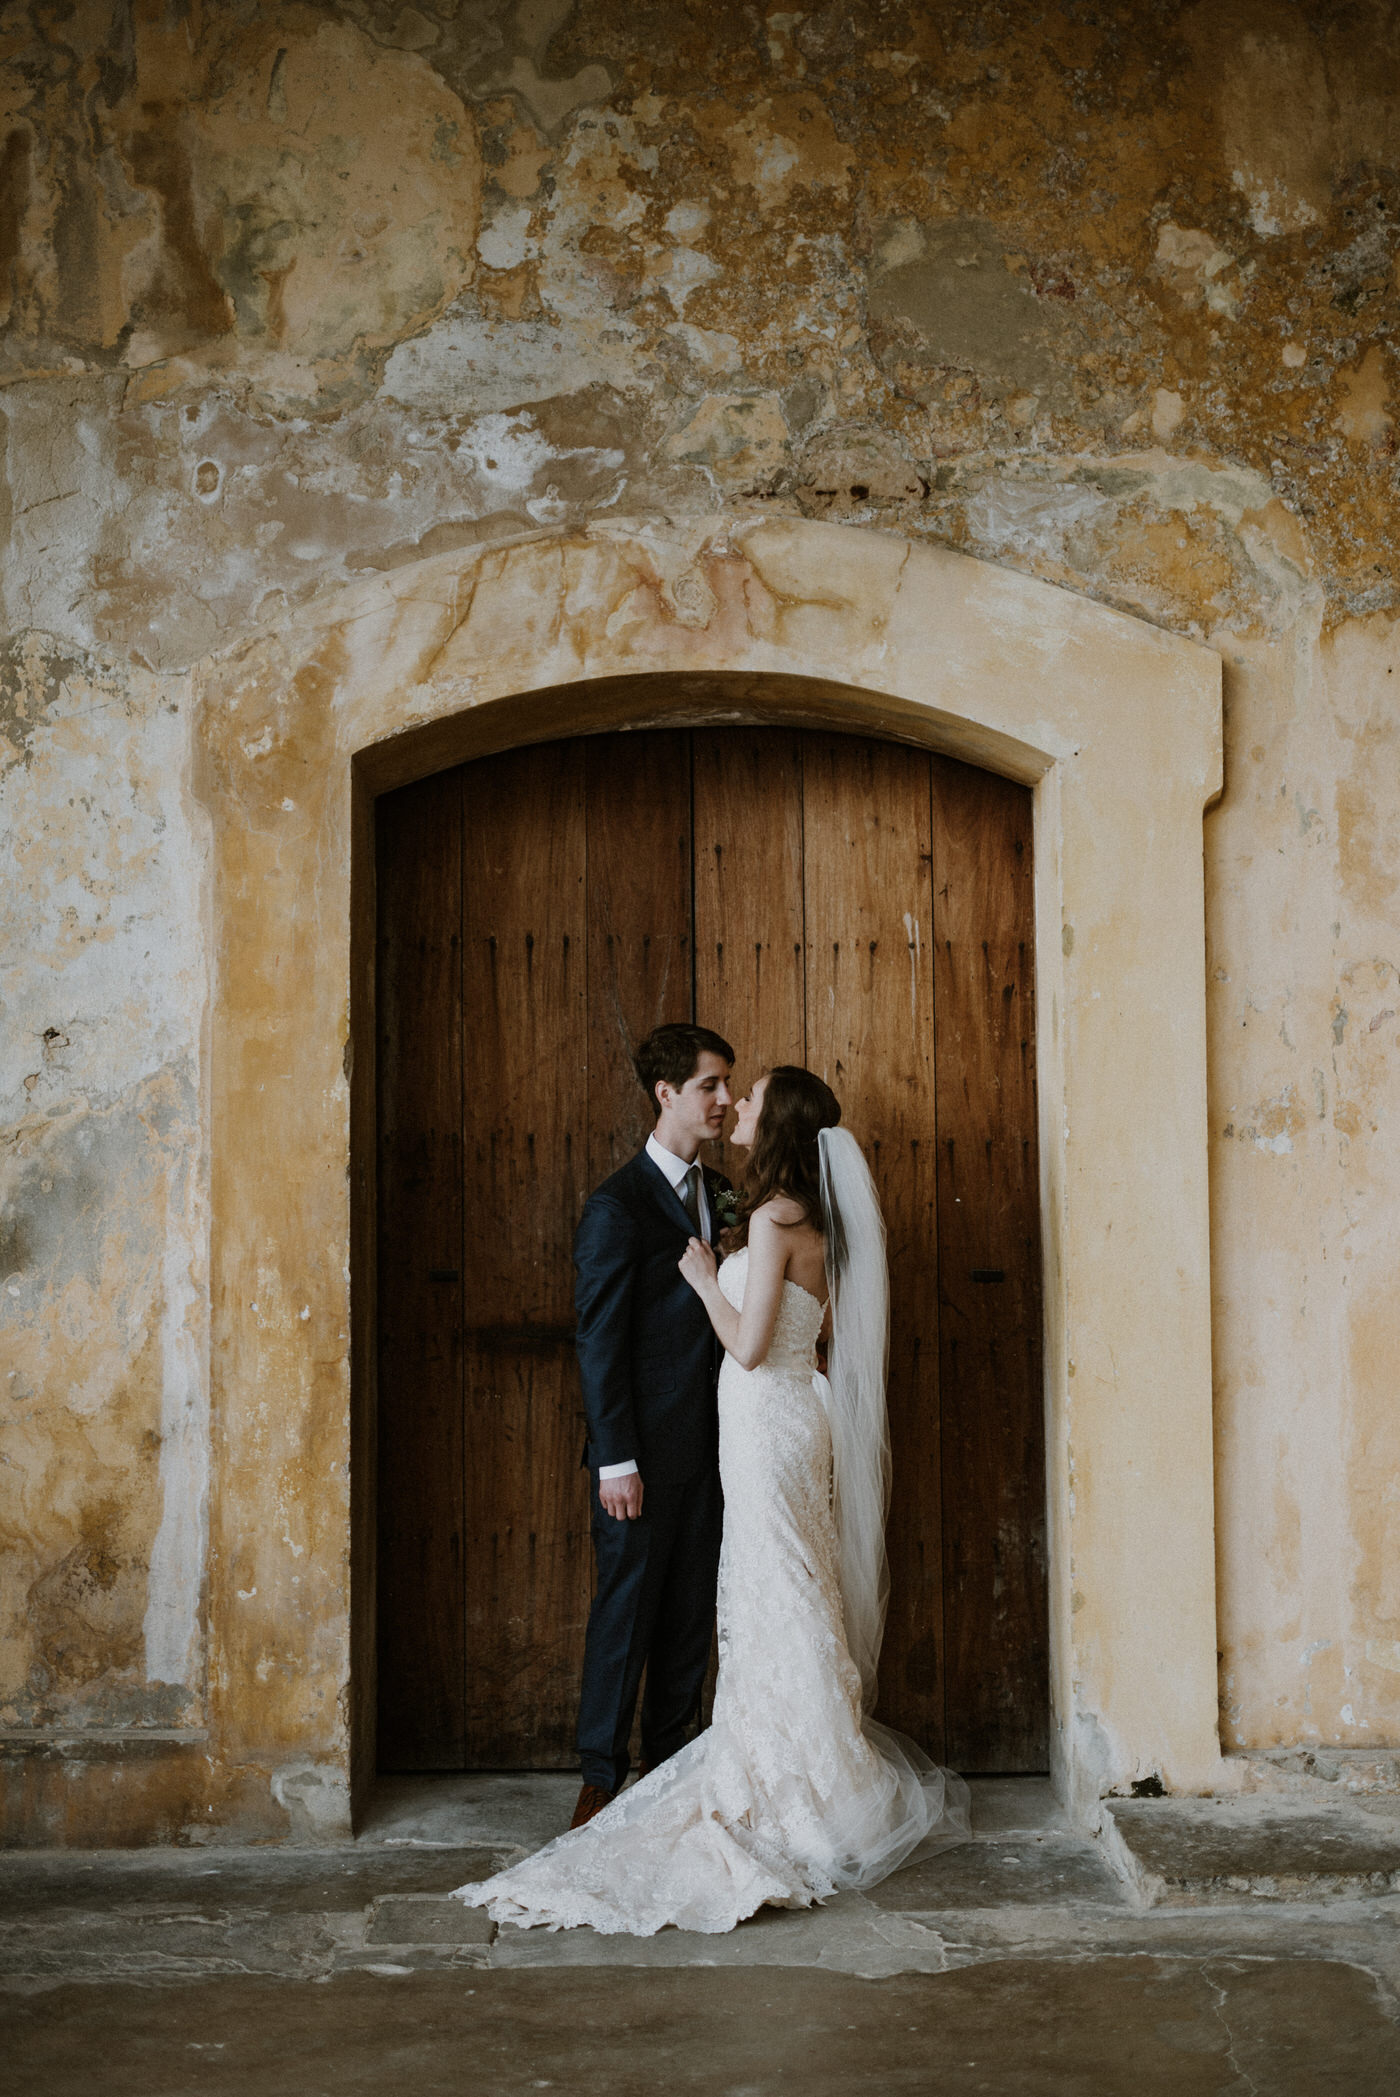 Beautiful bride and groom standing at a castle door